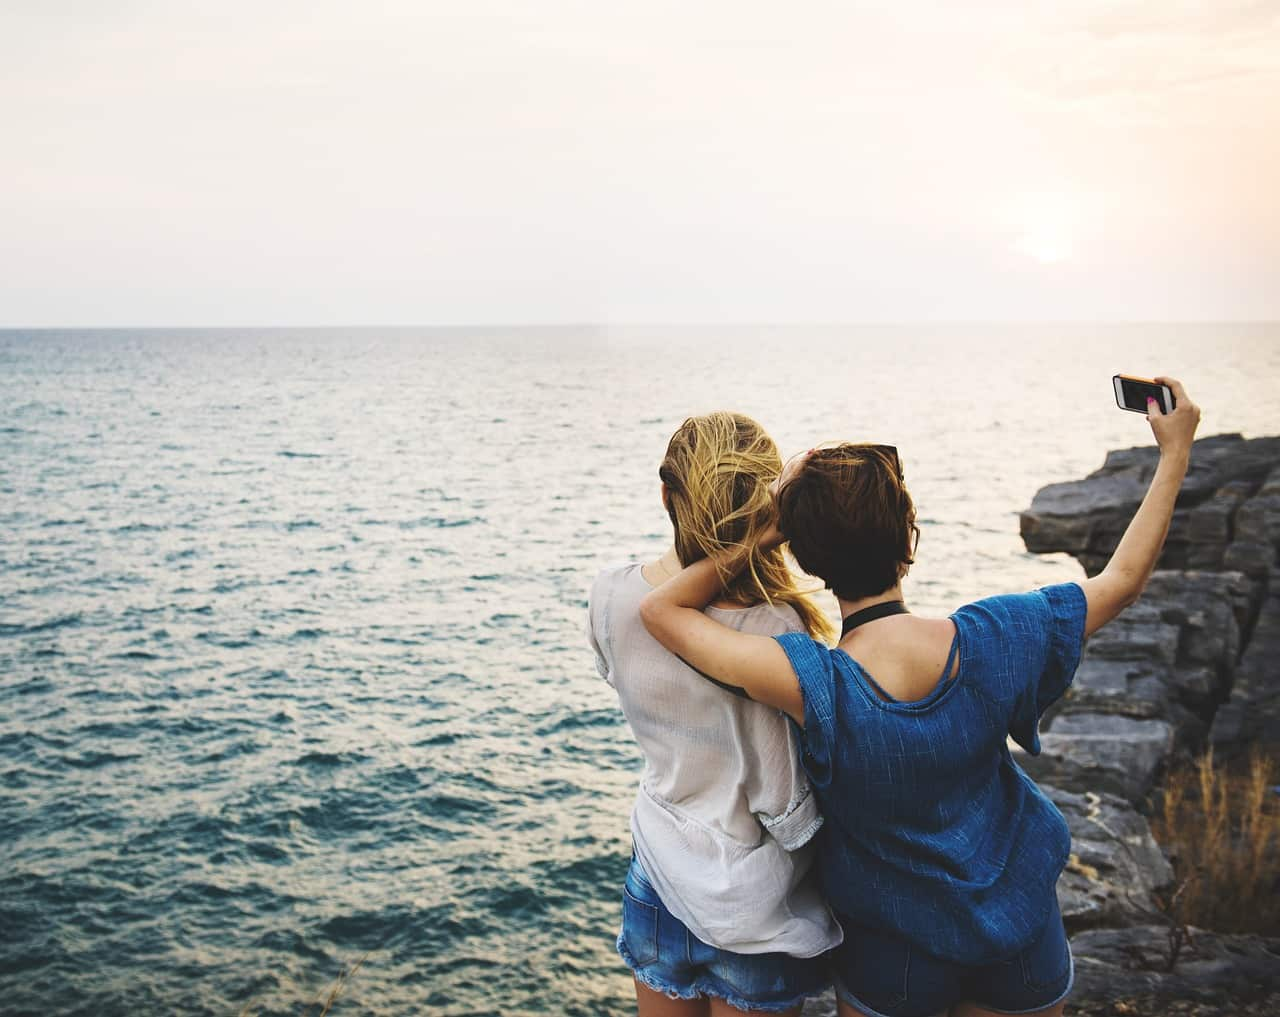 10 Easy Woys To Find A Travel Partner For Your Next Adventure